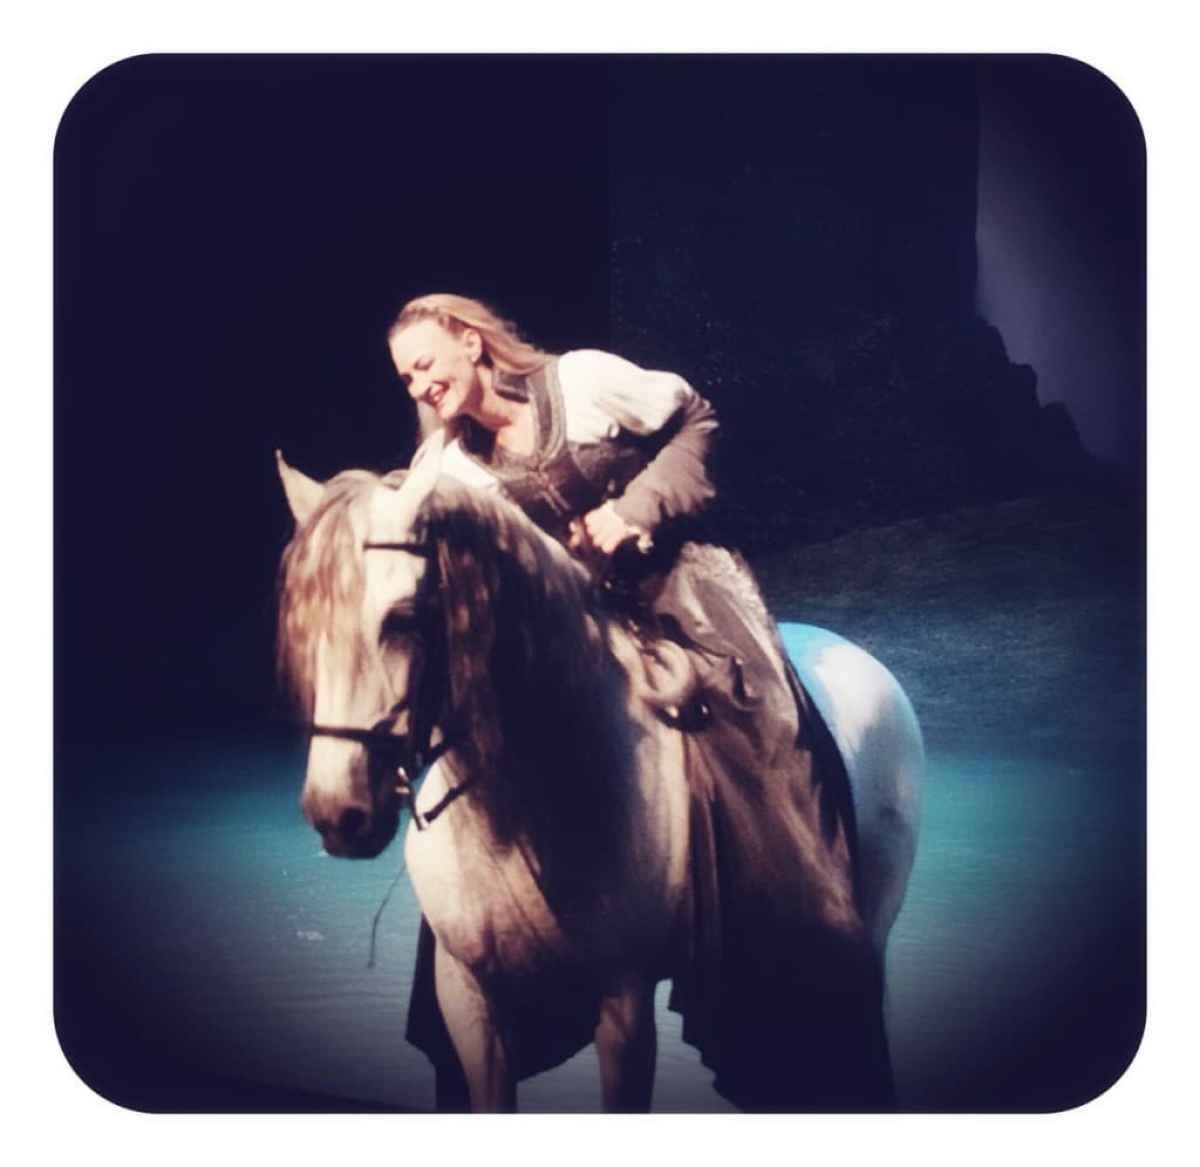 Discount Tickets to see Cavalia Odysseo in Irvine, California